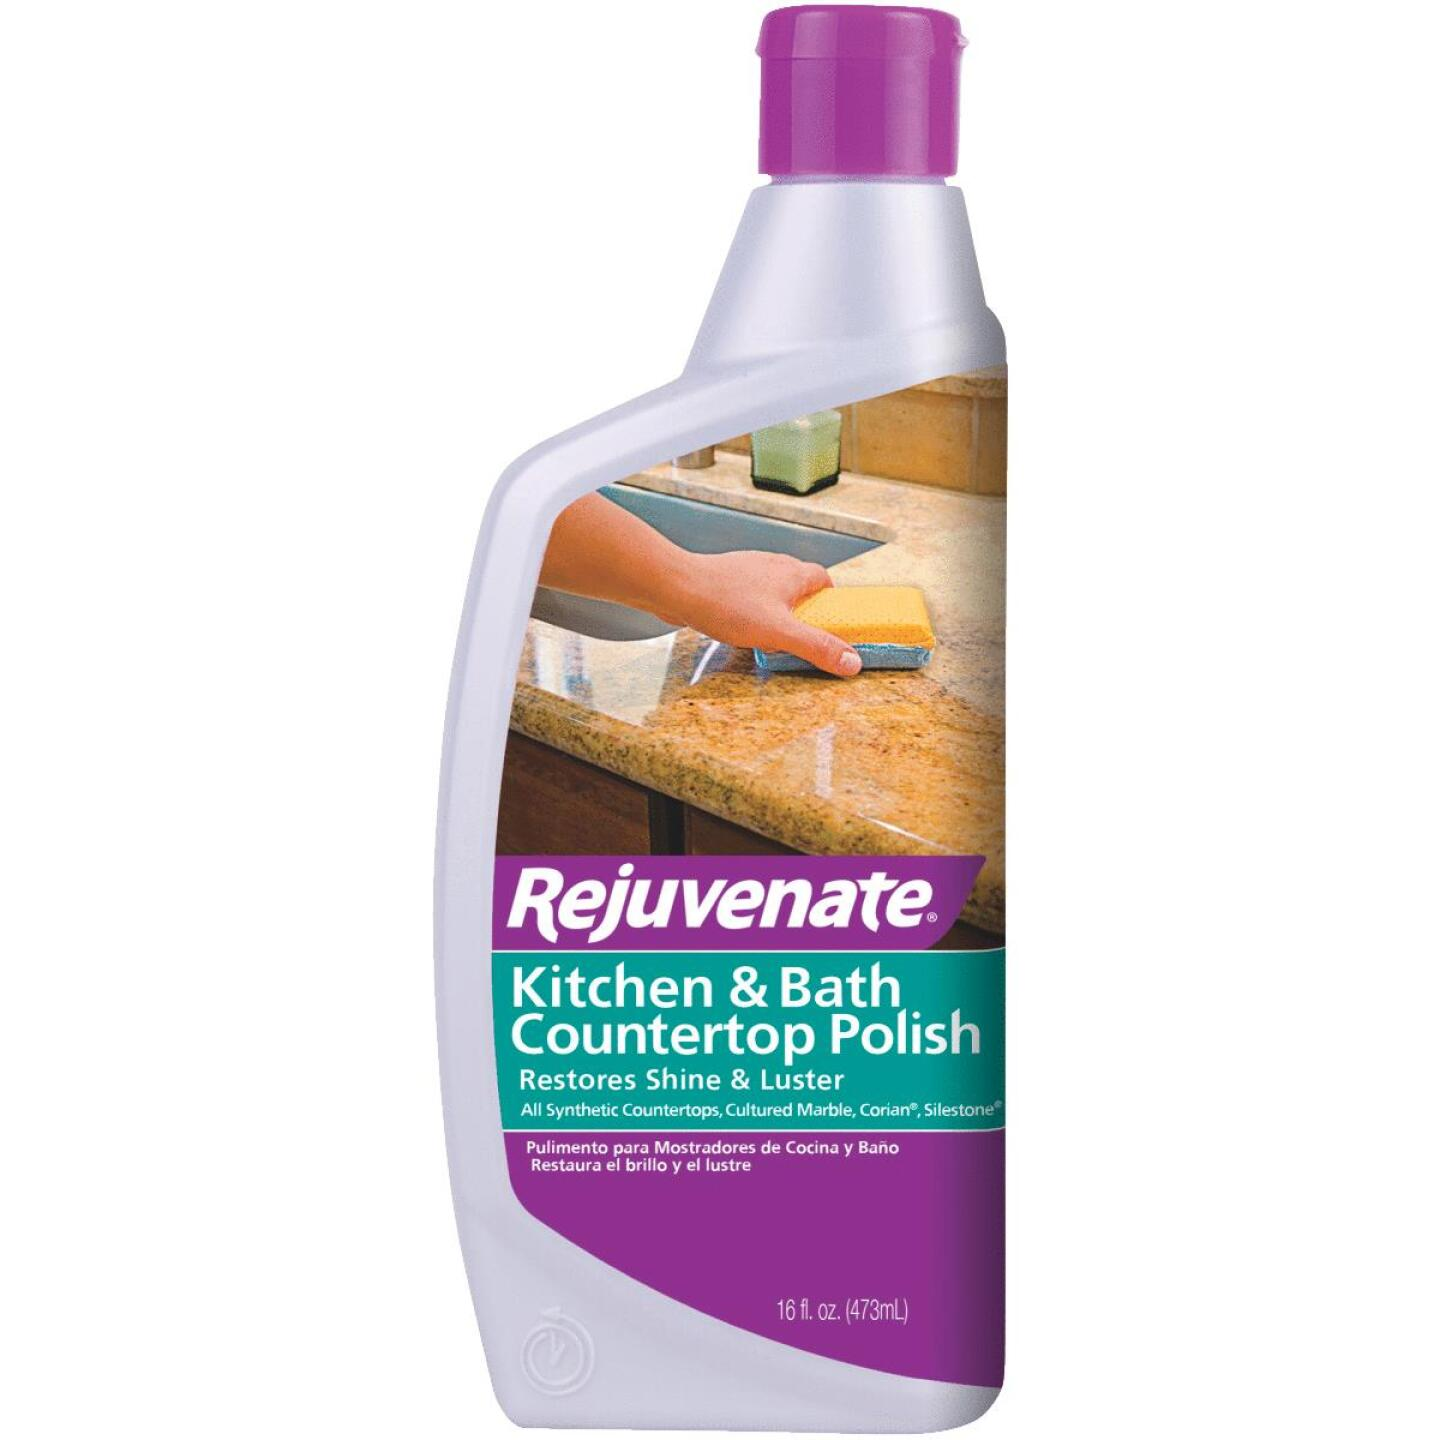 Rejuvenate 16 Oz. Kitchen & Bath Countertop Polish Image 1